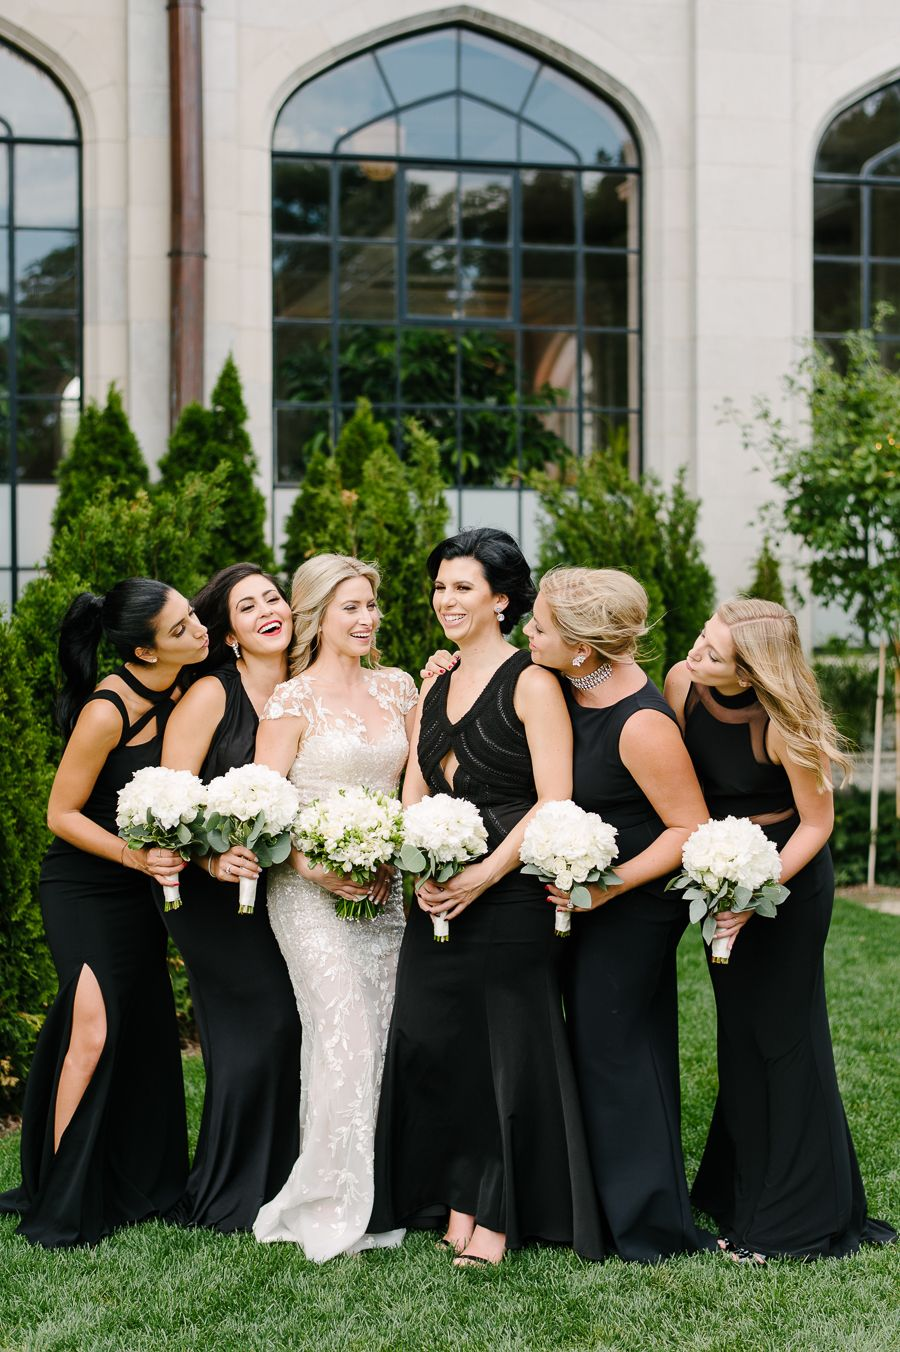 Youll swear this wedding is from a fairytale wedding and weddings bridesmaids rocking their black dresses photography mango studios httpsmangostudios ombrellifo Choice Image